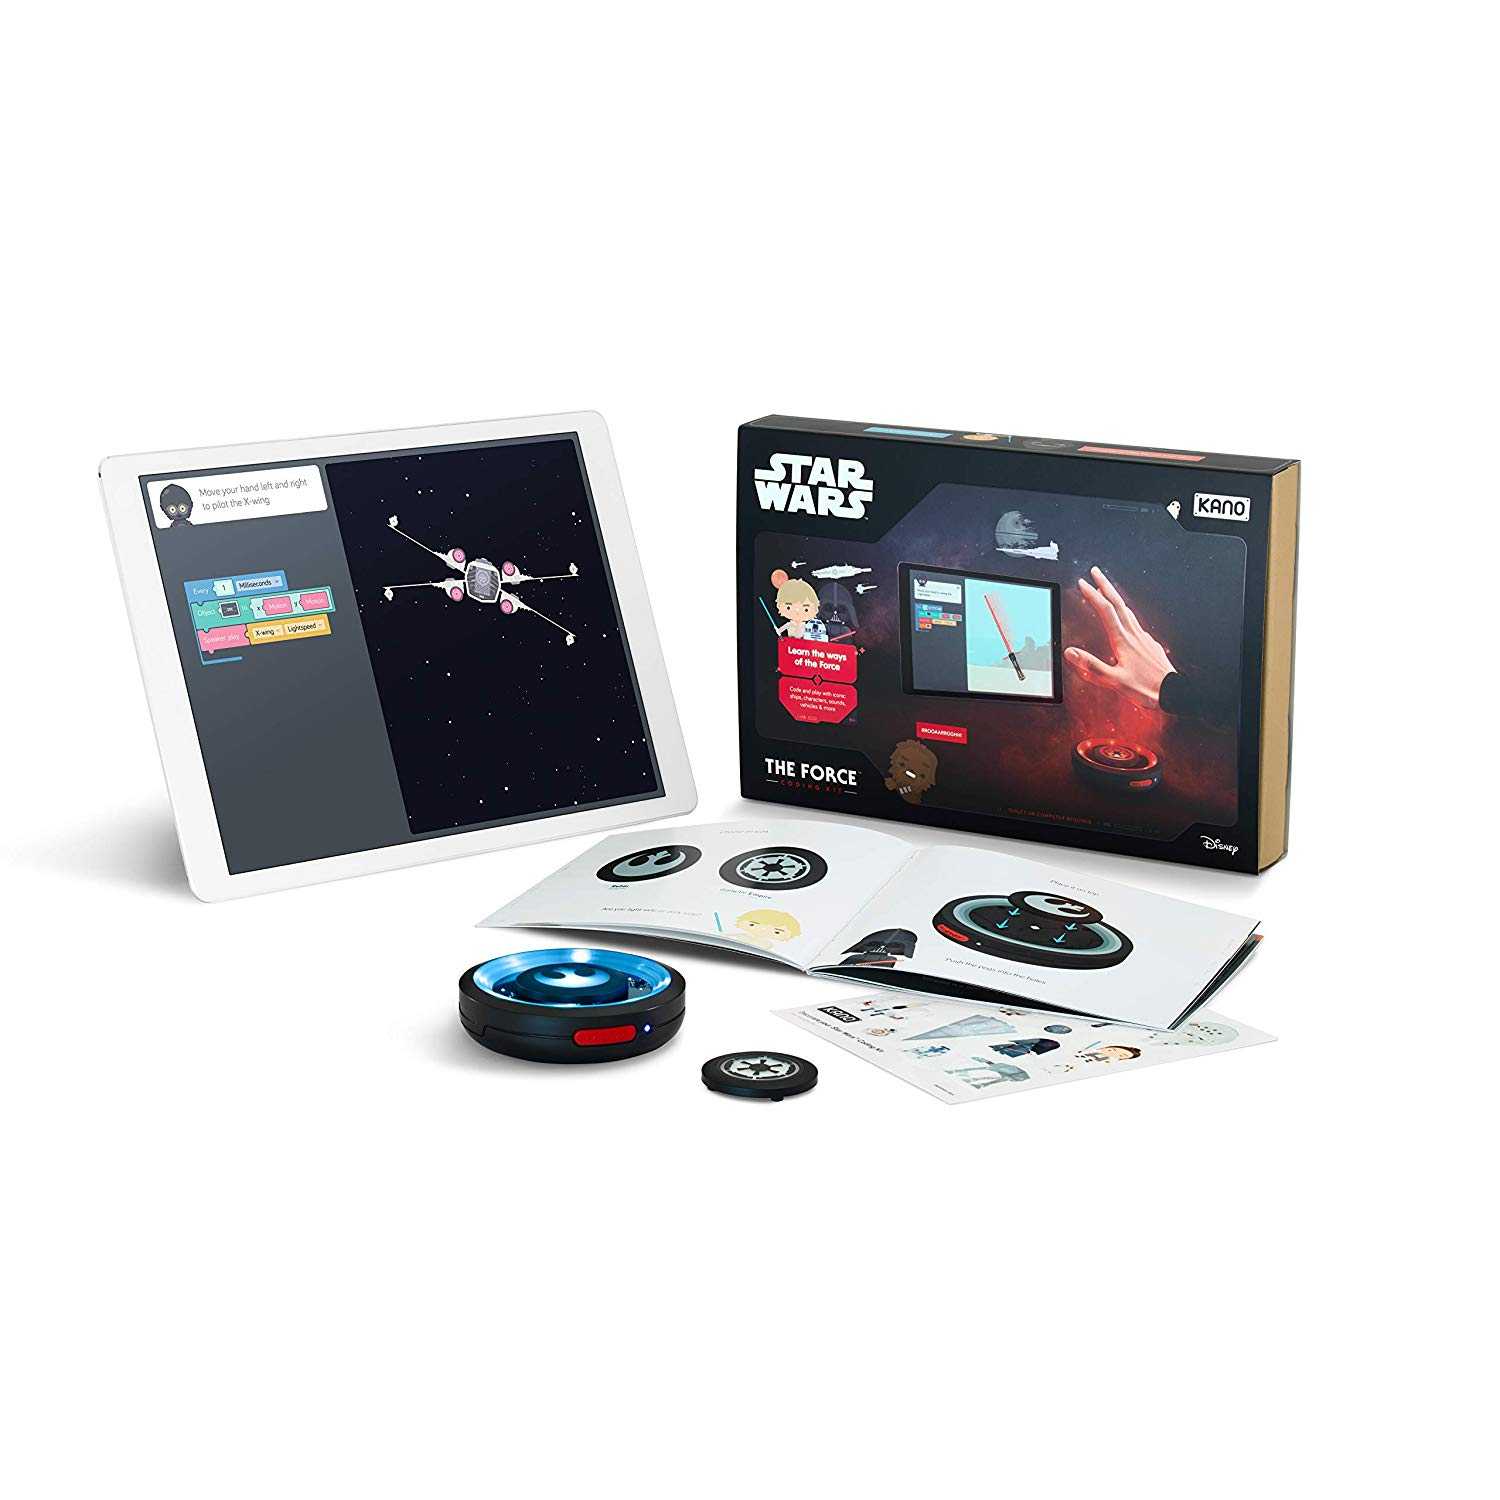 81NzhGRmRPL. SL1500 - Kano Star Wars The Force Coding Kit - Explore The Force. STEM Learning and Coding Toy for Kids Style:Standard